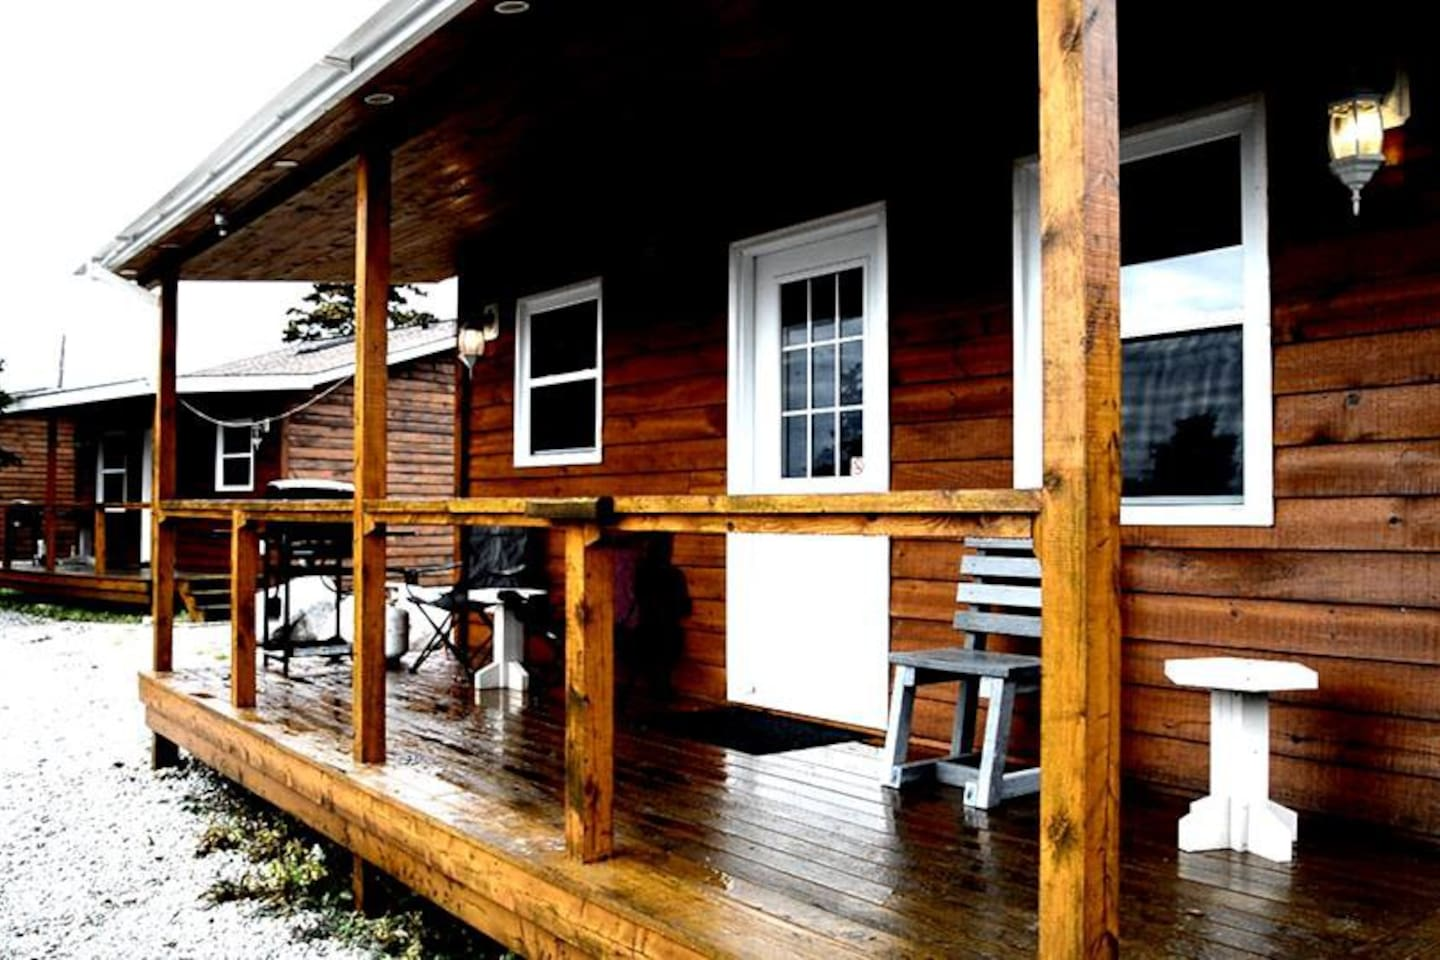 4 Star Chalets with Outdoor Hot tub & Sauna. 2 Bedroom Chalets overlooking Beautiful Robinson's River.  Each Chalet is fully equipped with everything you need including kitchenette, fireplace, BBQ, and free WIFI.